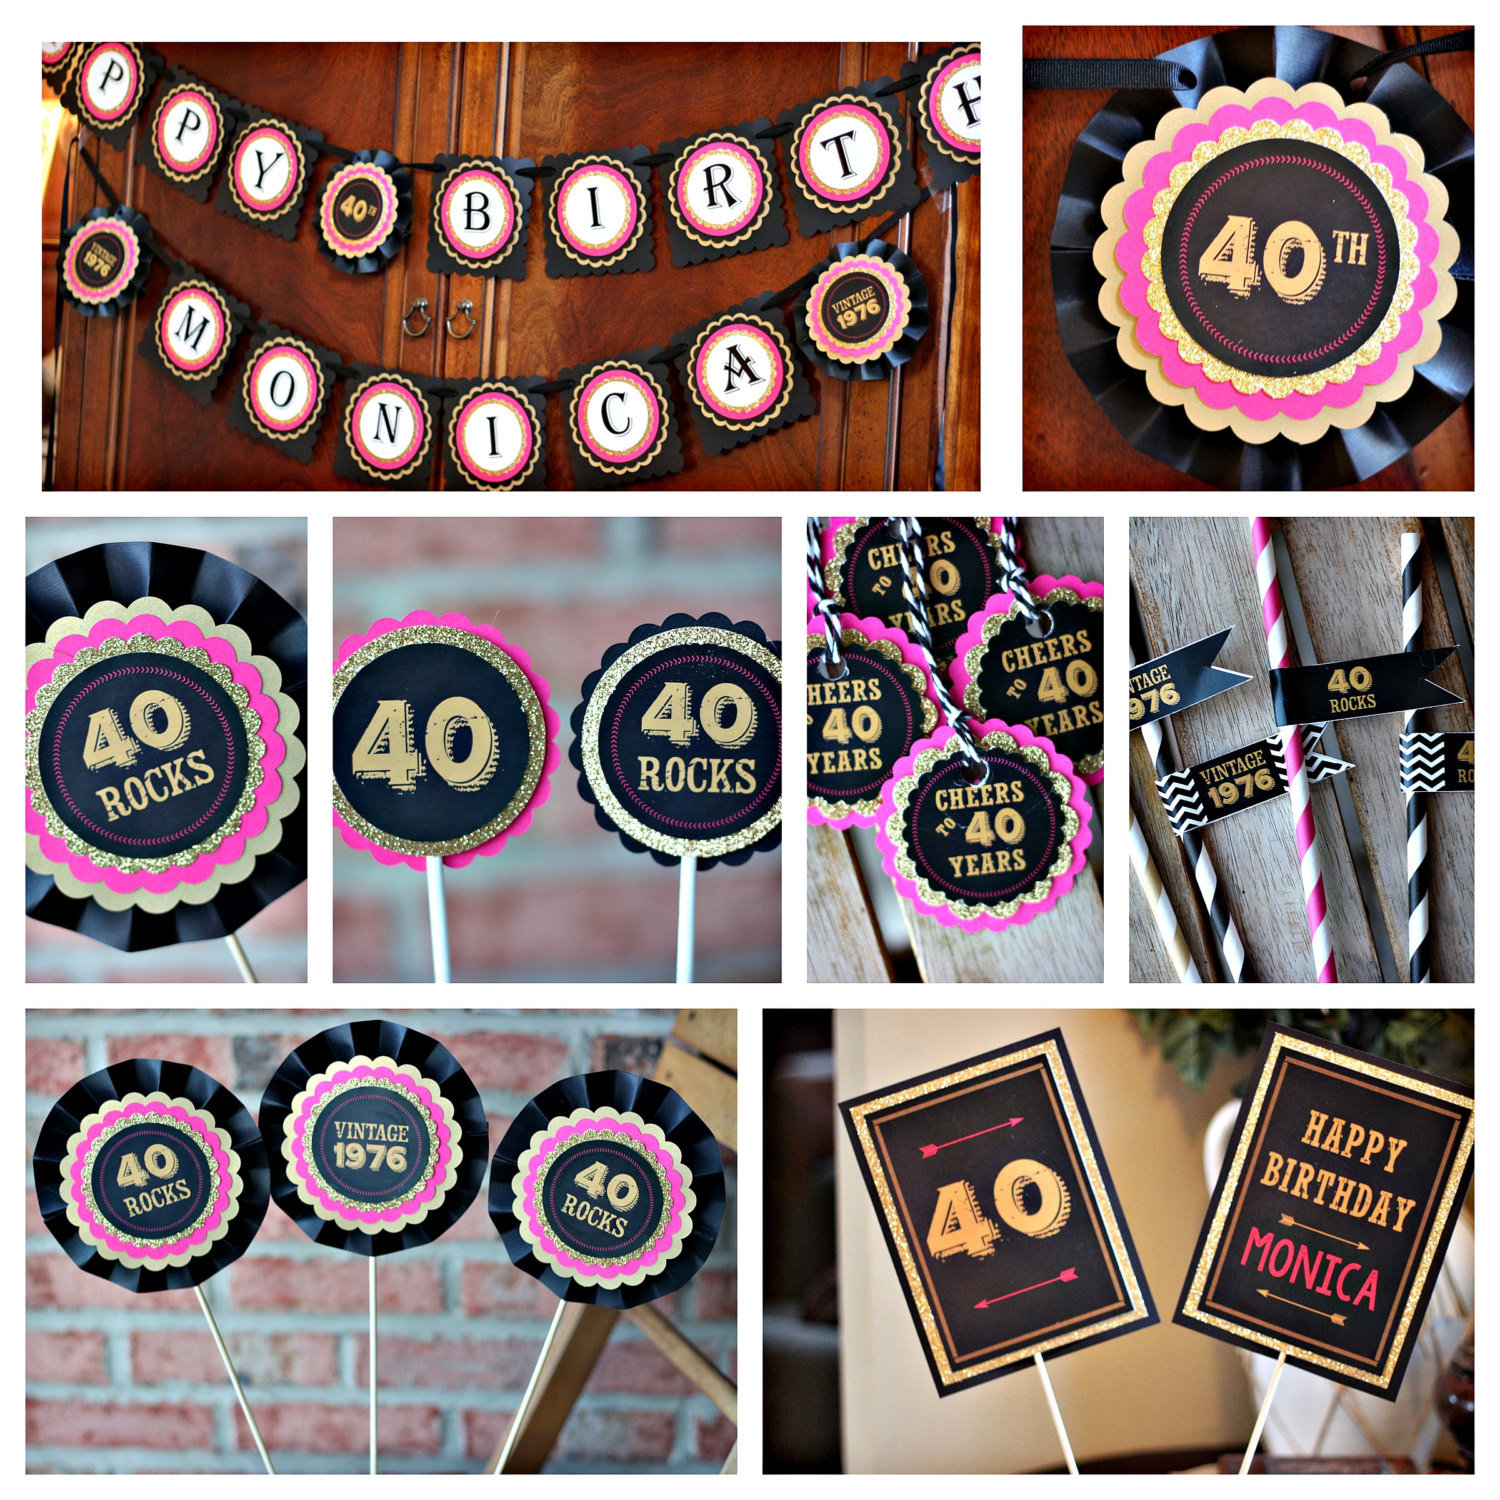 Best ideas about 40 Birthday Decorations . Save or Pin La s 40th birthday party decorations Black hot pink and Now.